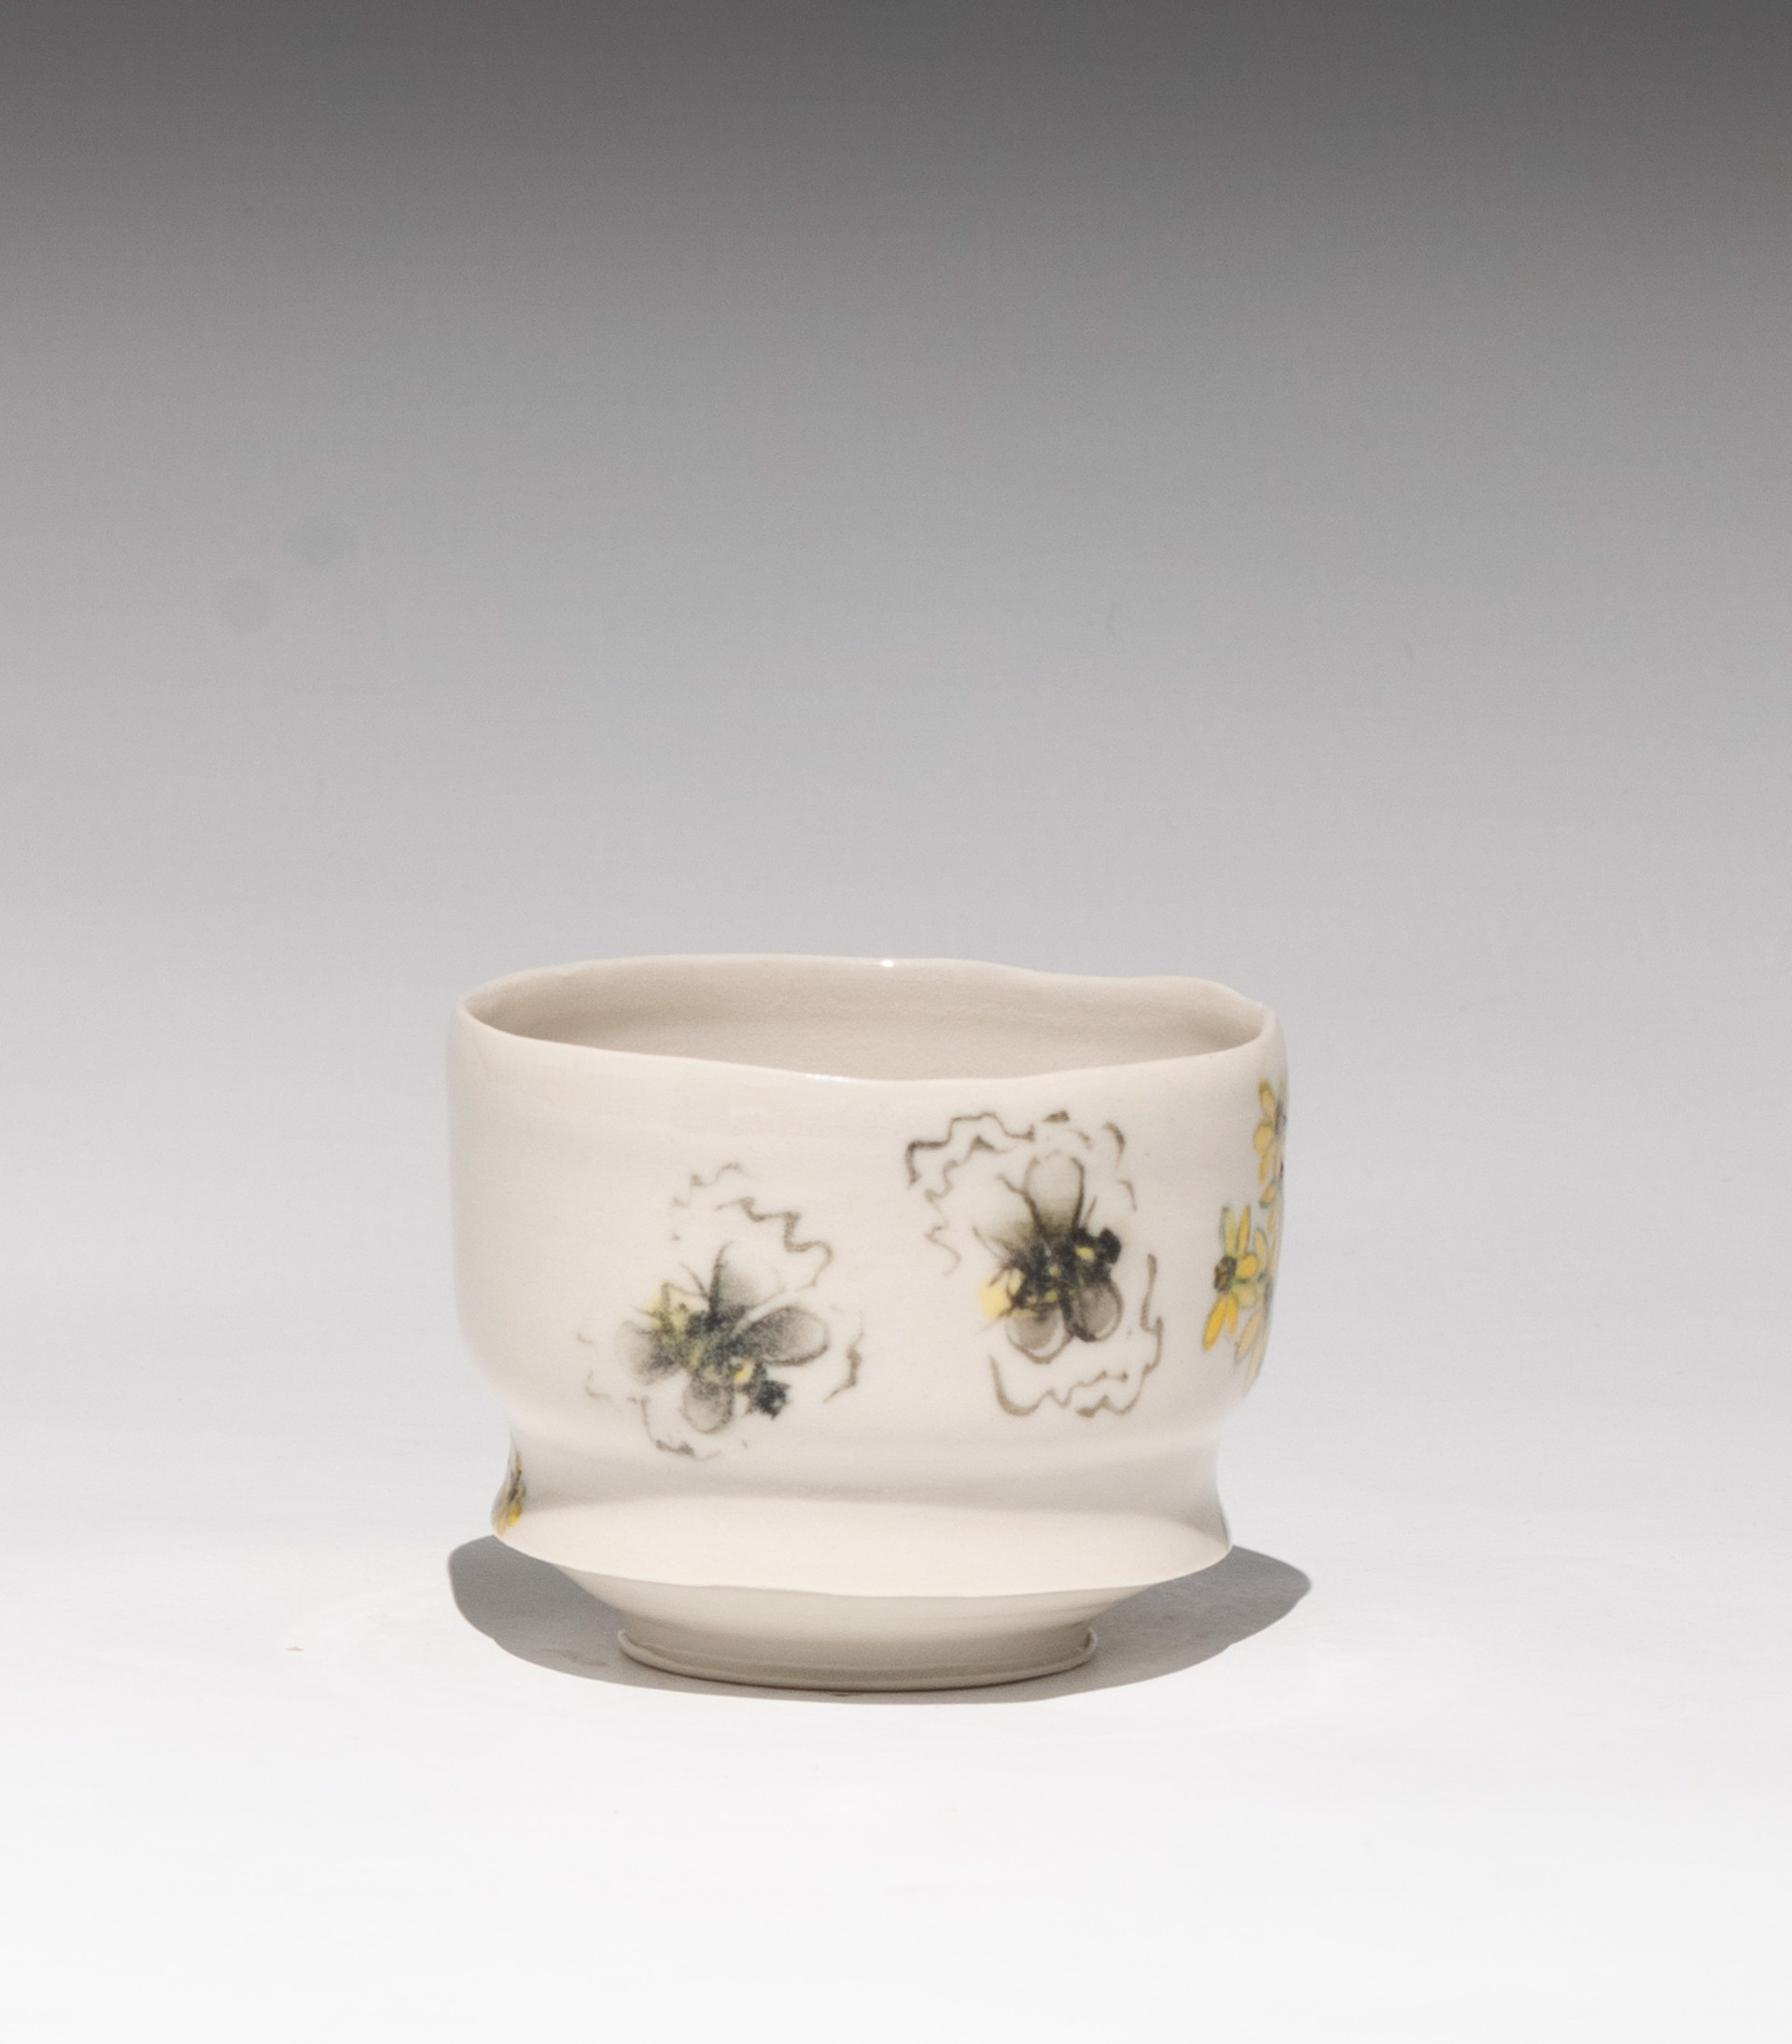 Insect Tea Bowl 8 by Caroline Bottom Anderson